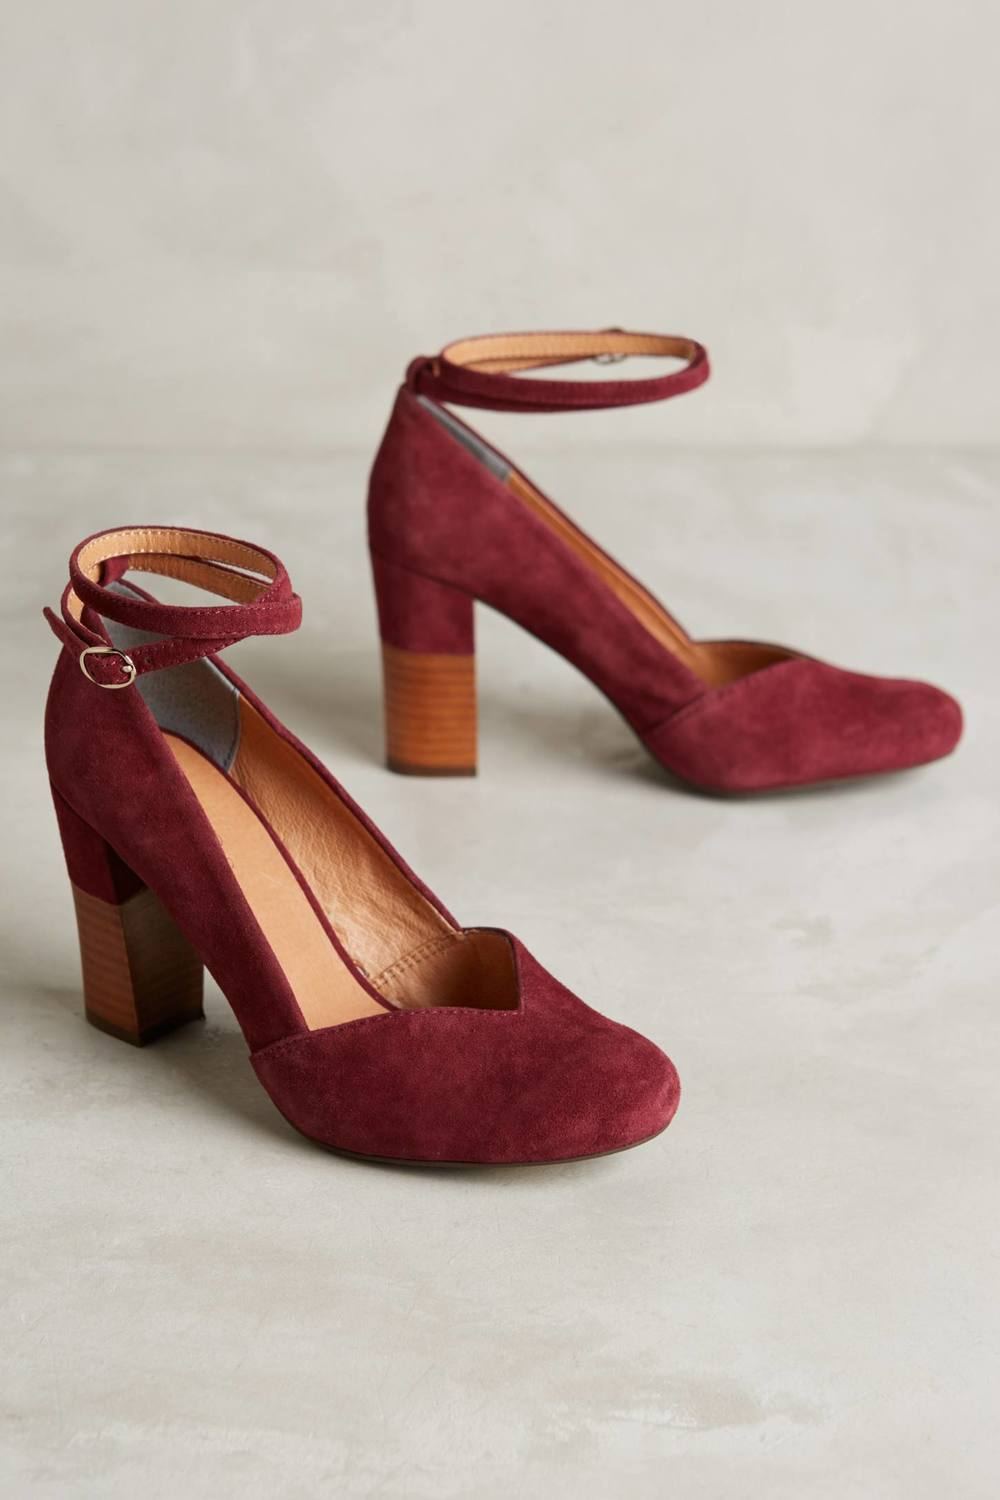 Lien Do Pajaro Heels. Available in multiple colors. Anthropologie. $158.